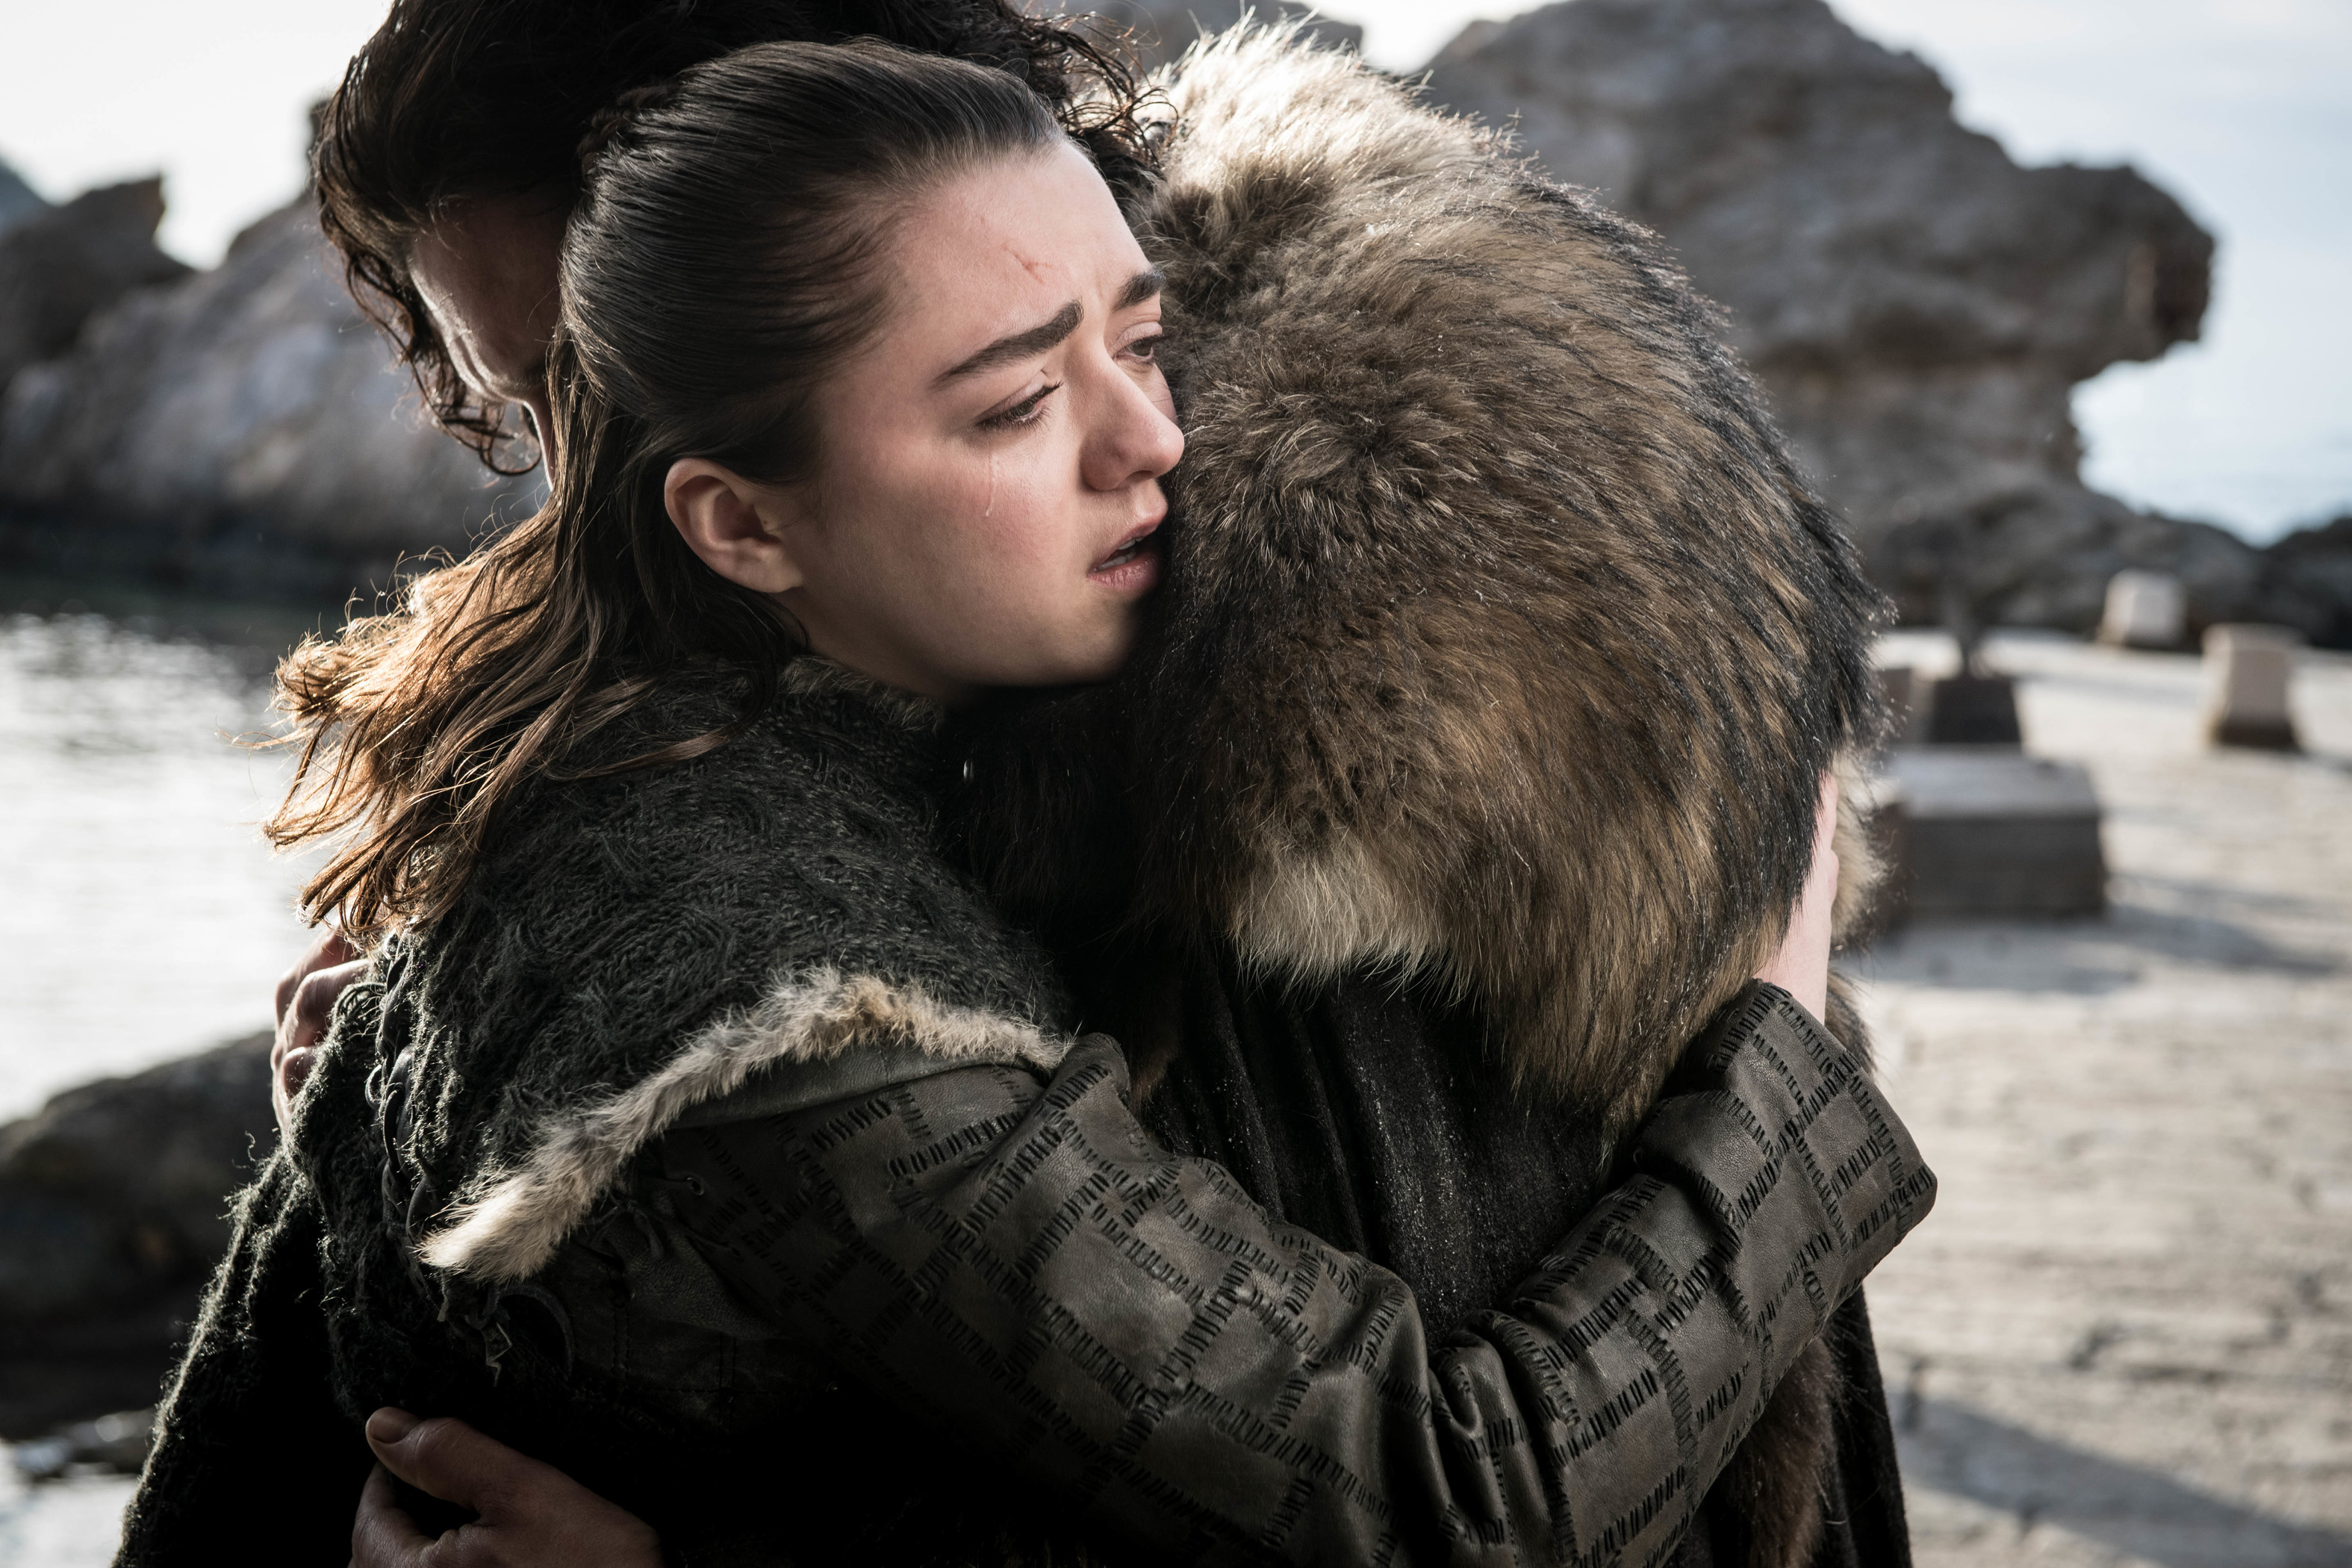 'Game of Thrones' Season 8 Marks All-Time Low for Amount of Dialogue Spoken in the Series